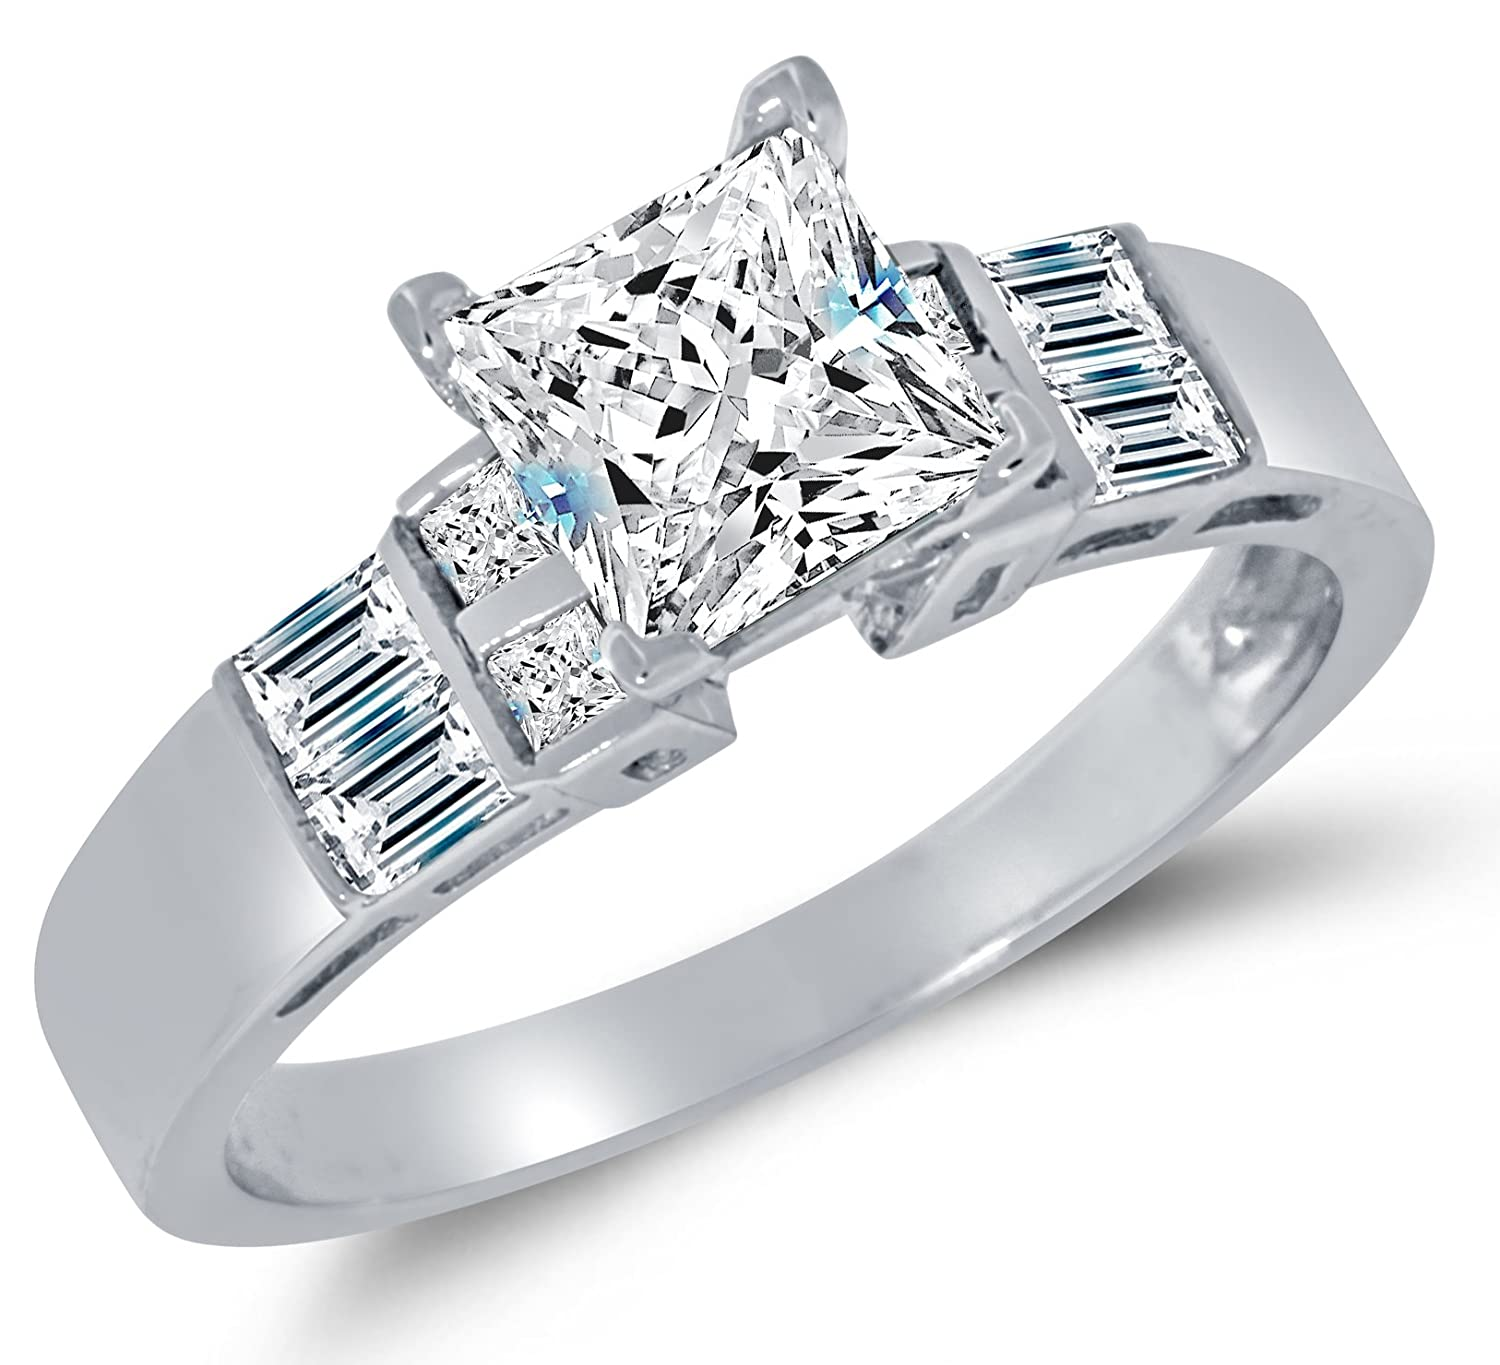 Solid 14k White Gold Highest Quality CZ Cubic Zirconia Engagement Ring - Princess Cut Solitaire with Baguette Side Stones (1.75cttw., 1.5ct. Center) Sonia Jewels SCRGN-705